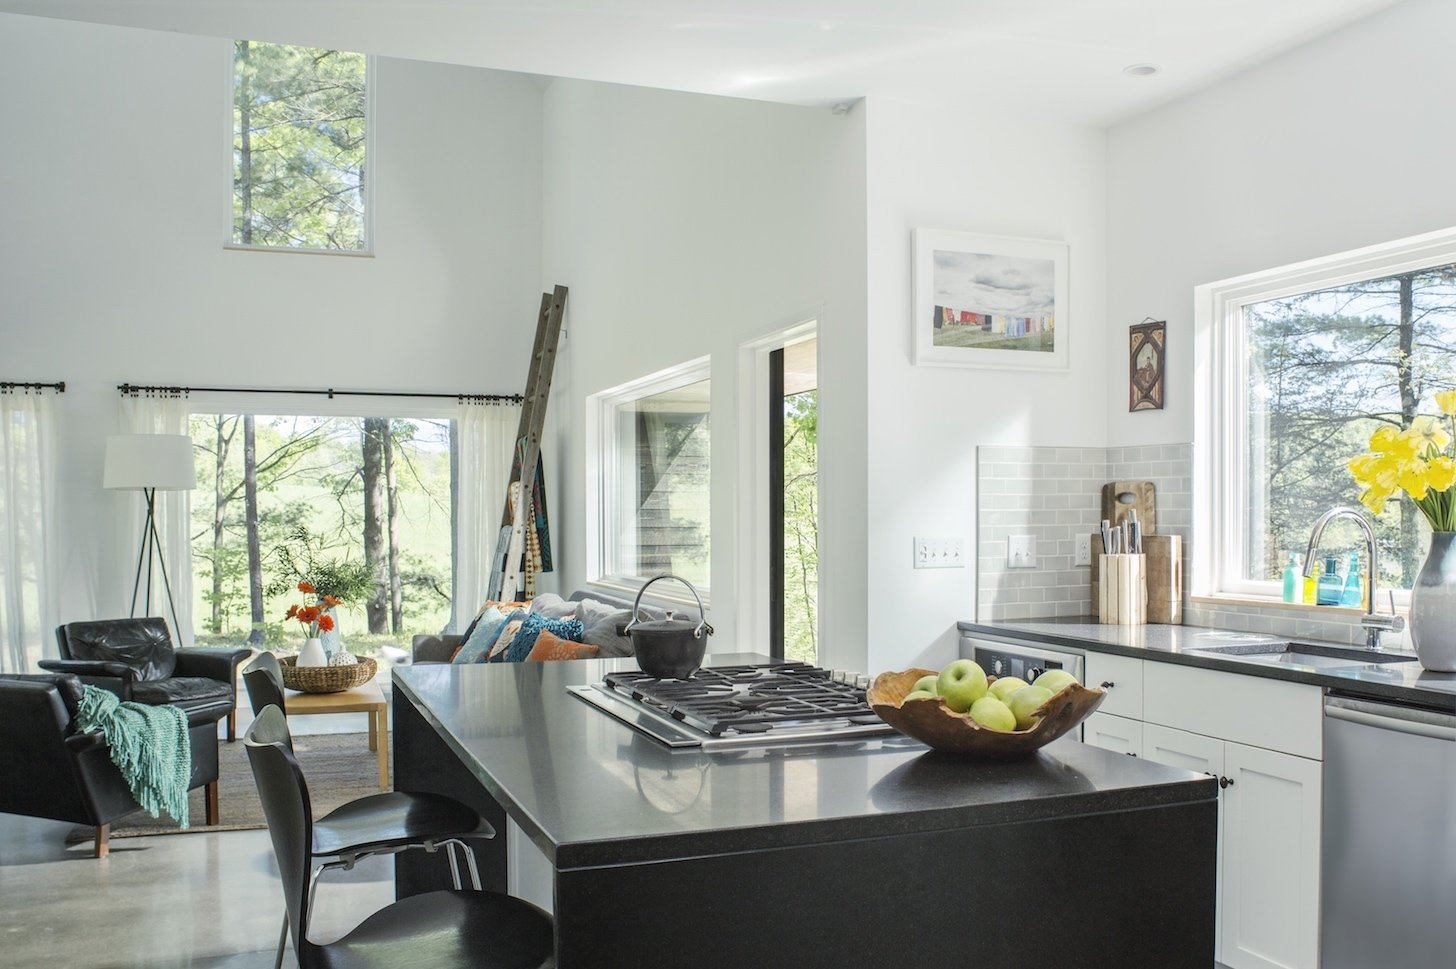 Architect Elizabeth Herrmann's Knoll House project, Best Transitional category winner of 2017 Marvin Architects Challenge.   Tagged: Kitchen. Knoll House by Marvin Windows and Doors